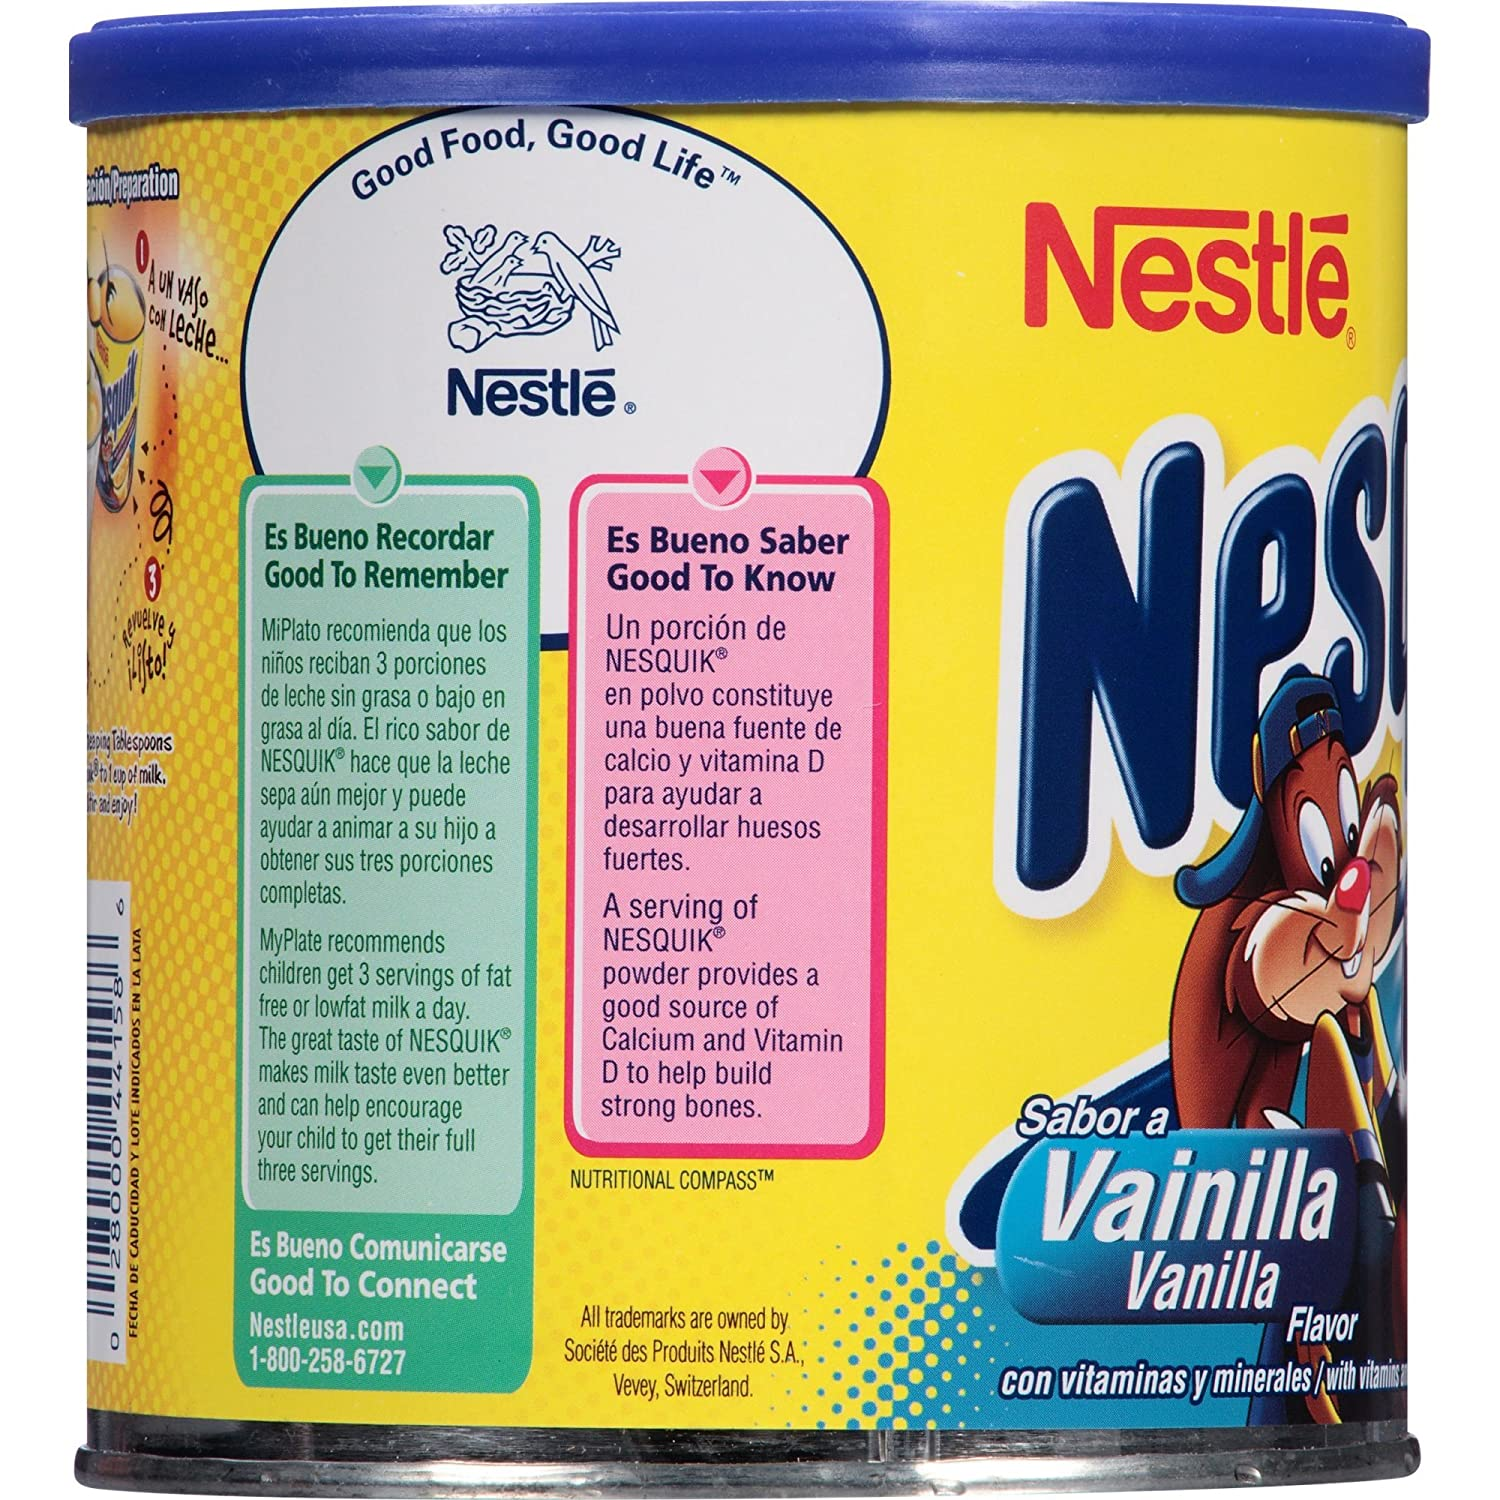 Nesquik Vanilla Flavor 14.1 oz. Canister (Pack of 3): Amazon.com: Grocery & Gourmet Food